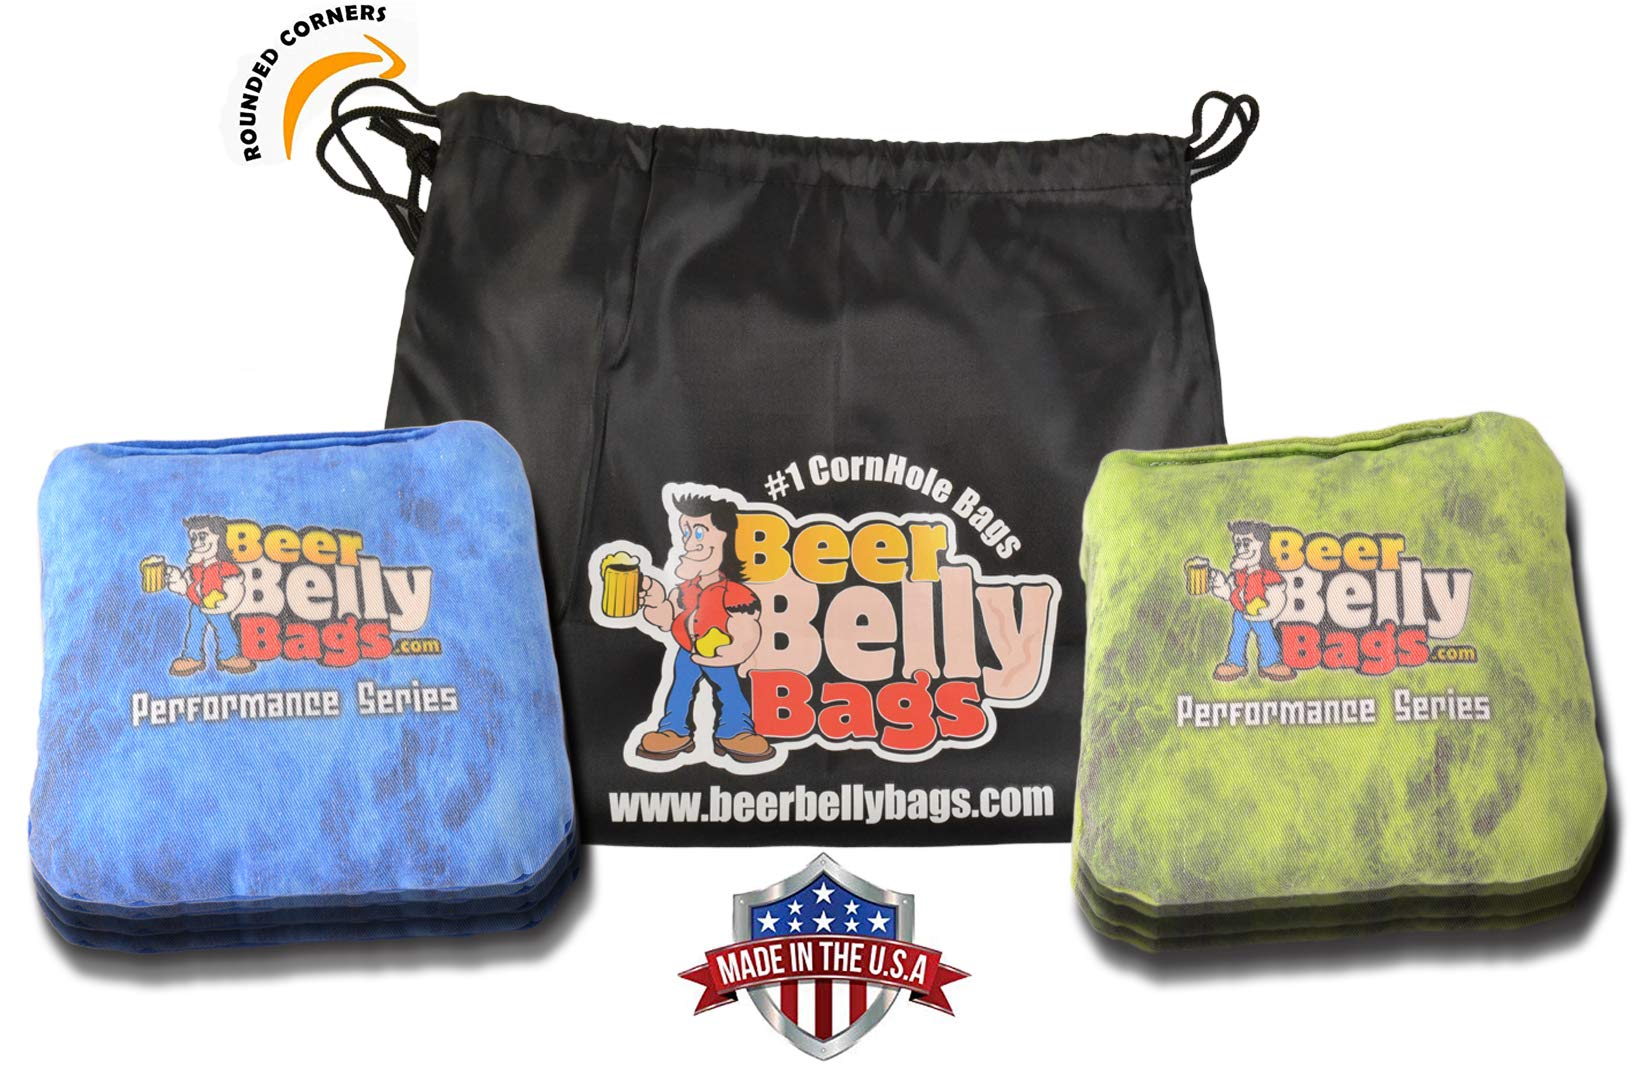 Beer Belly Bags Cornhole - Performance Series 8 Bags ACL Approved Resin Filled - Double Sided - Sticky Side | Slick Side (Lime Fire/Blue Fire) by Beer Belly Bags